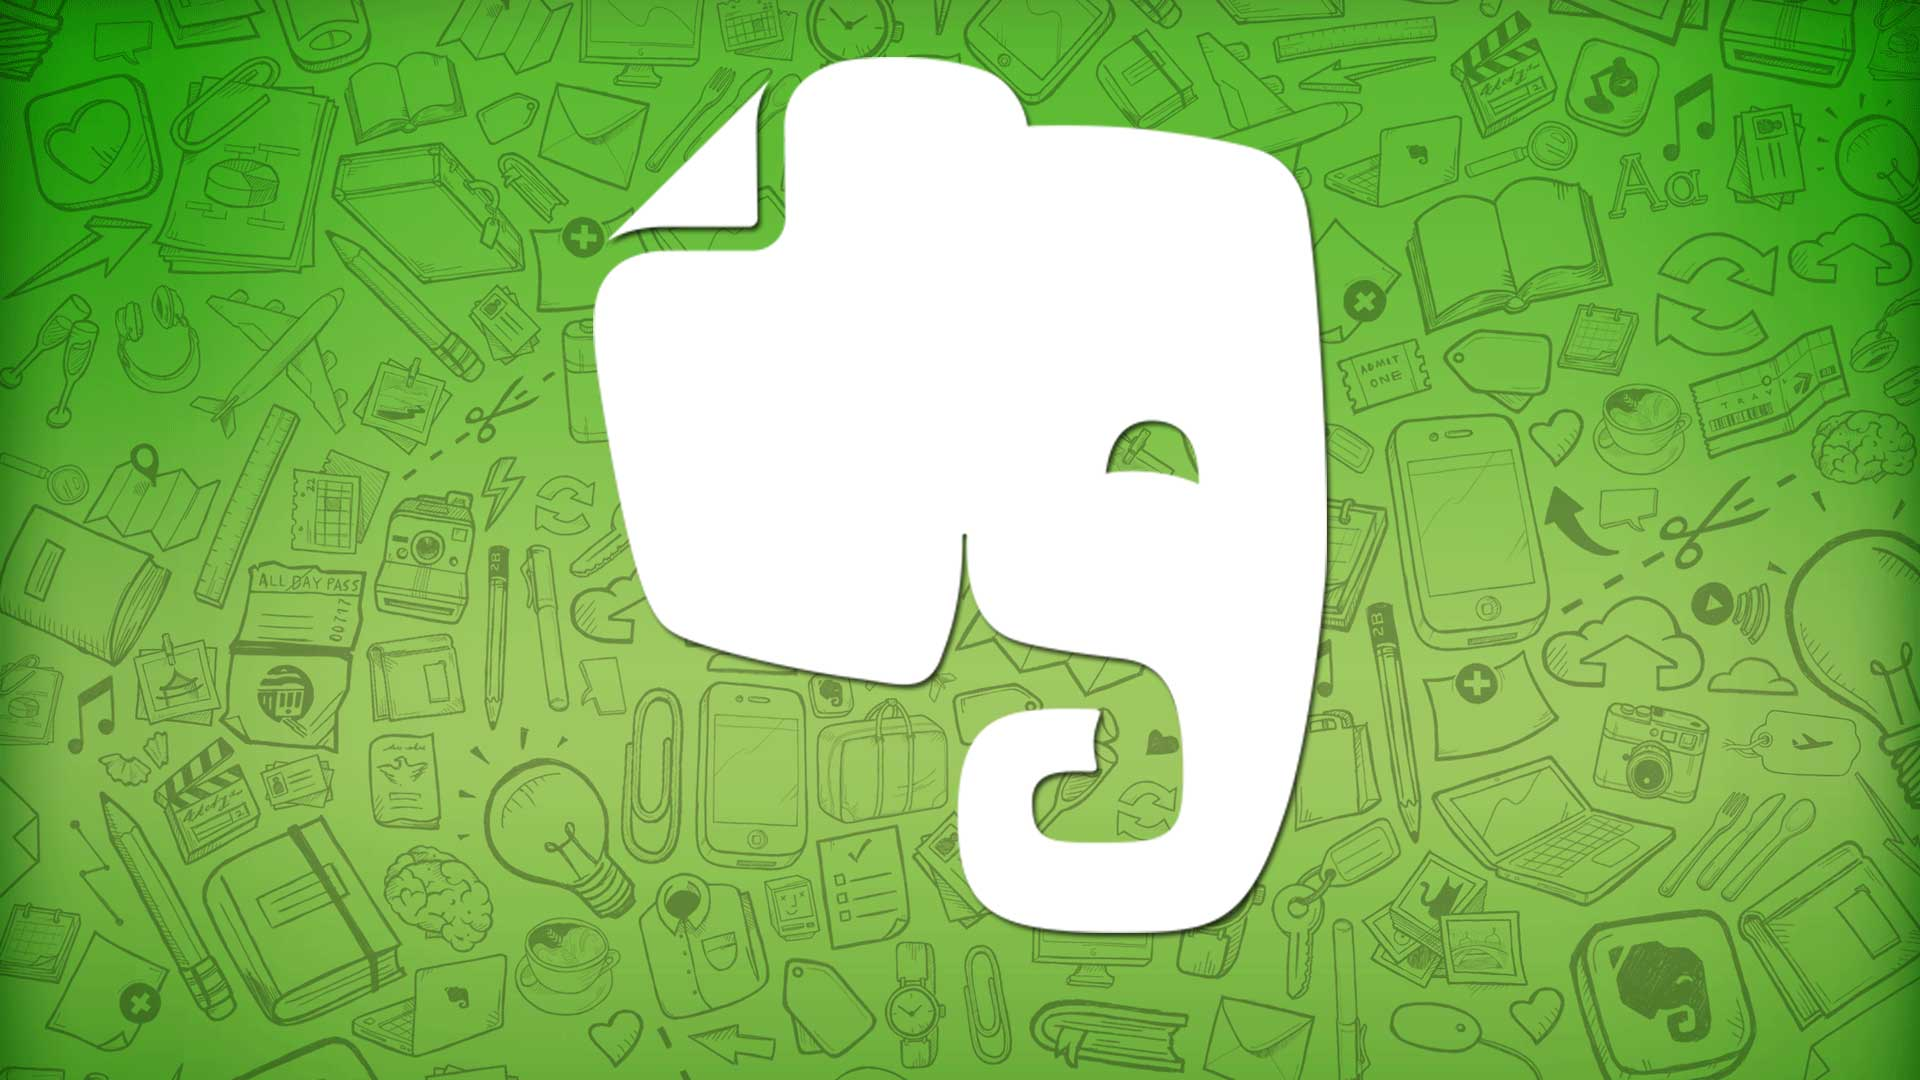 Evernote Focuses on Simplicity With a New App Update